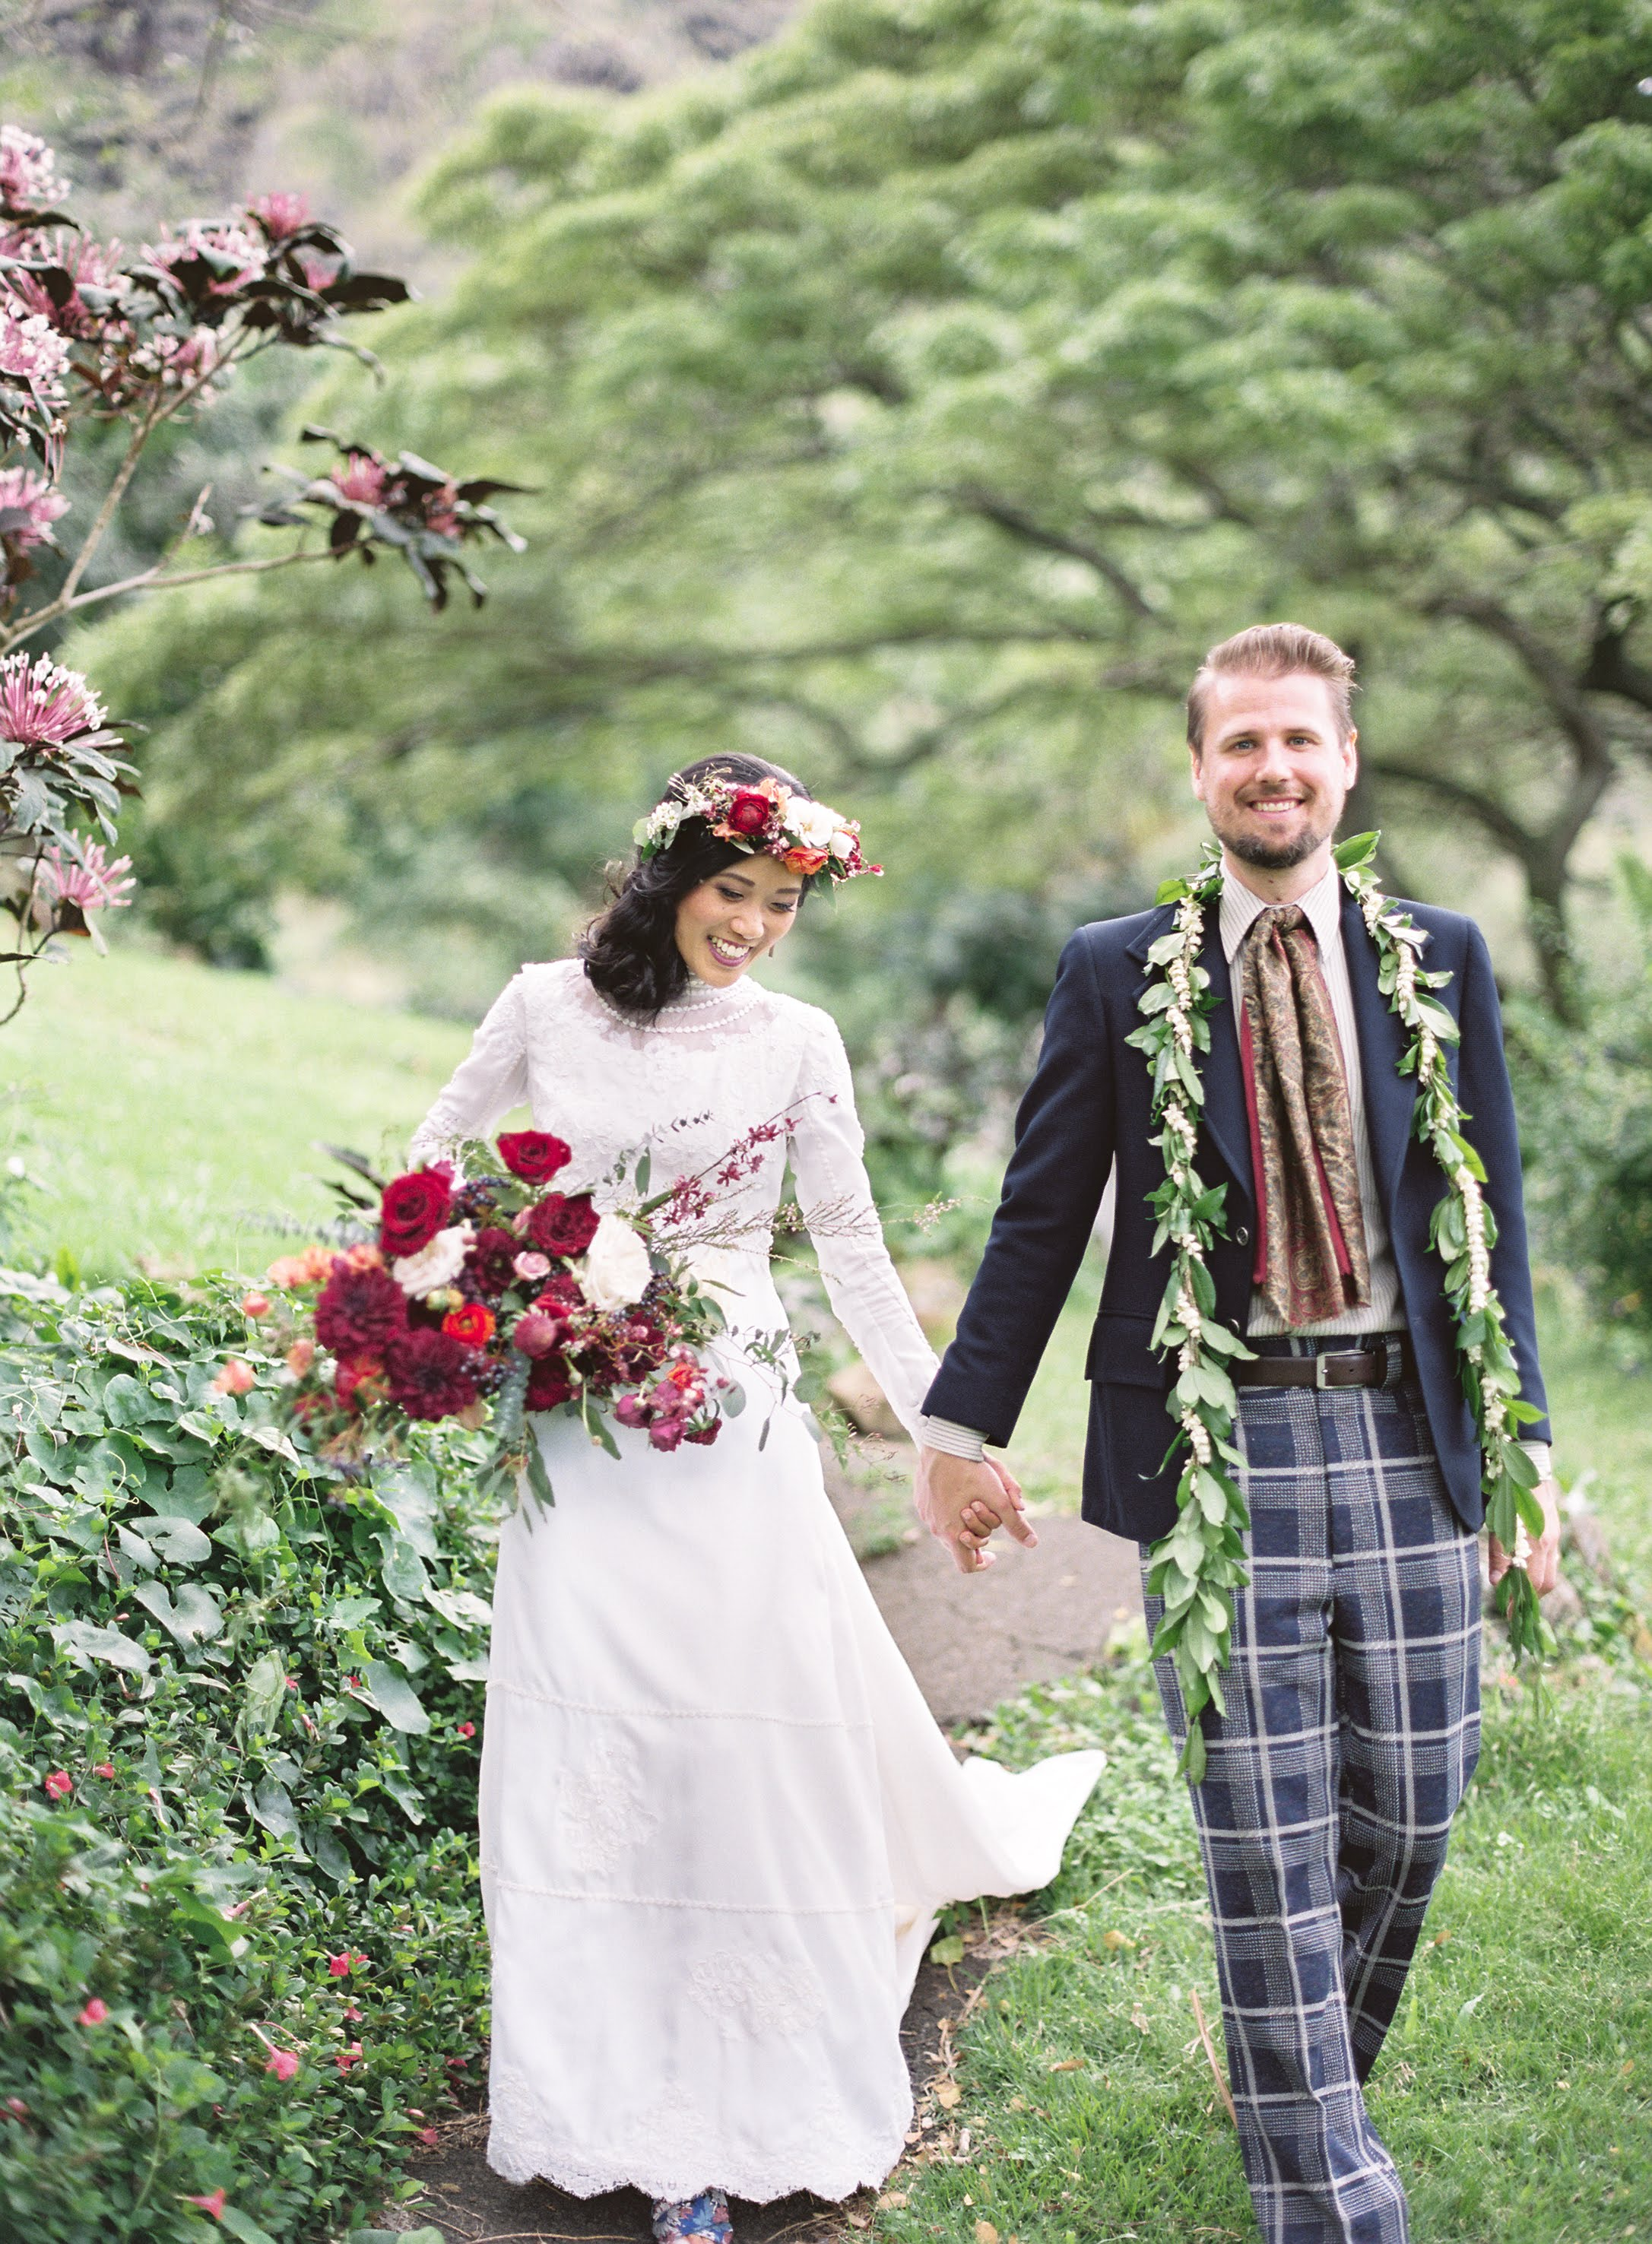 Bride and groom hold hands, walking through green foliage